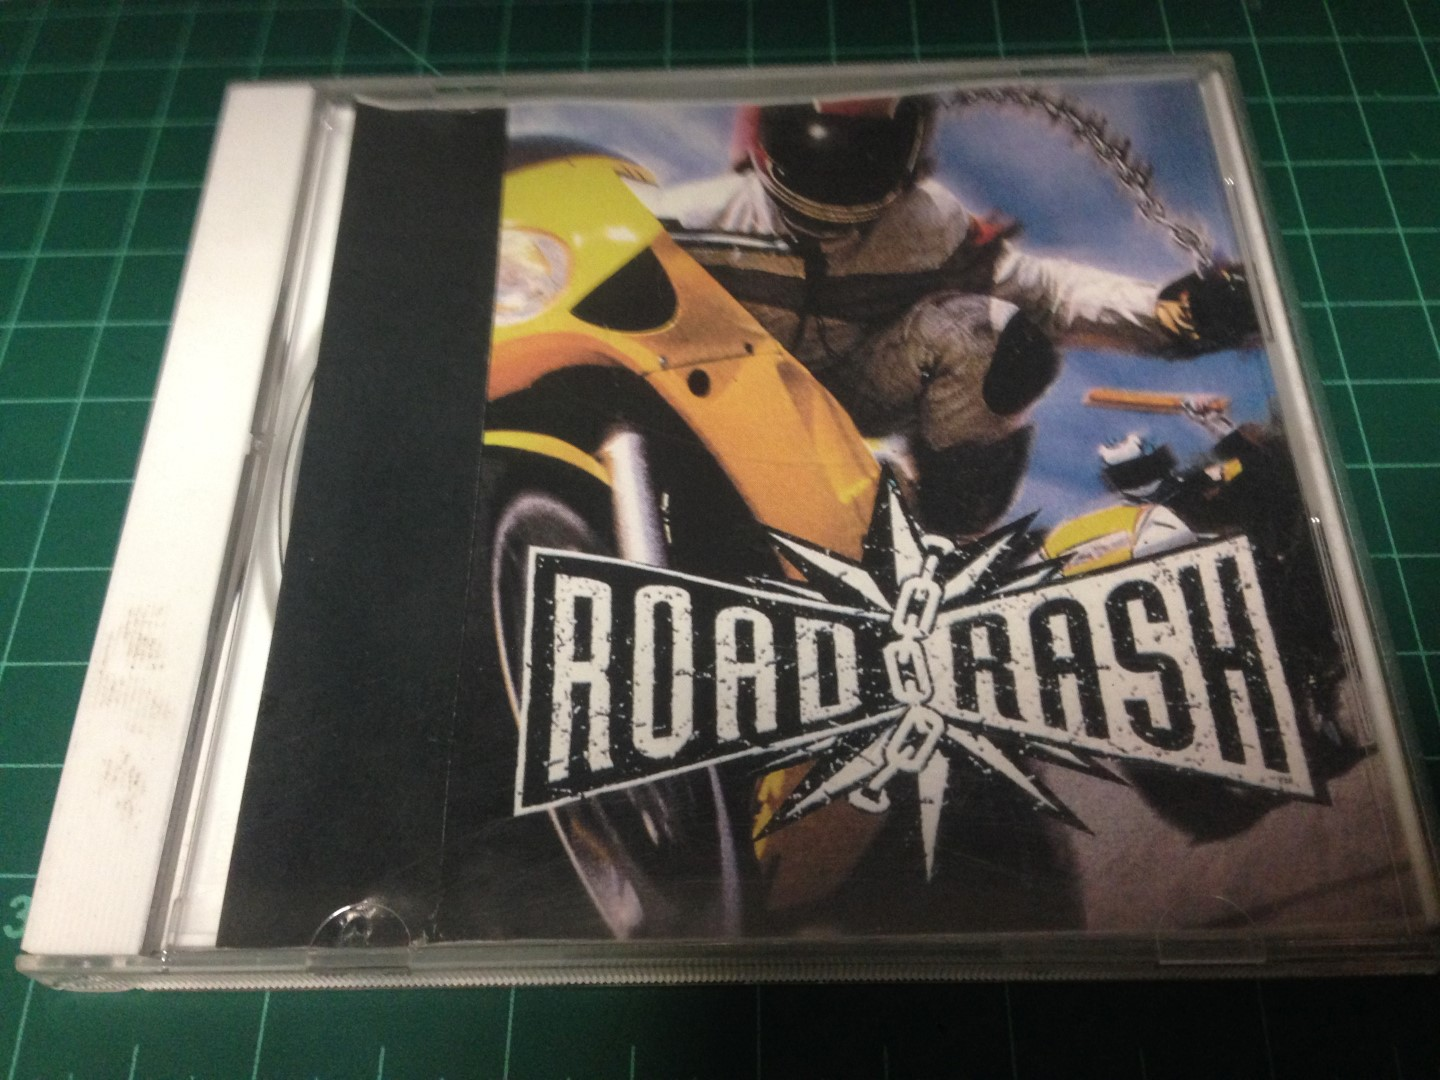 Rare ps1 developer copy of Road Rash